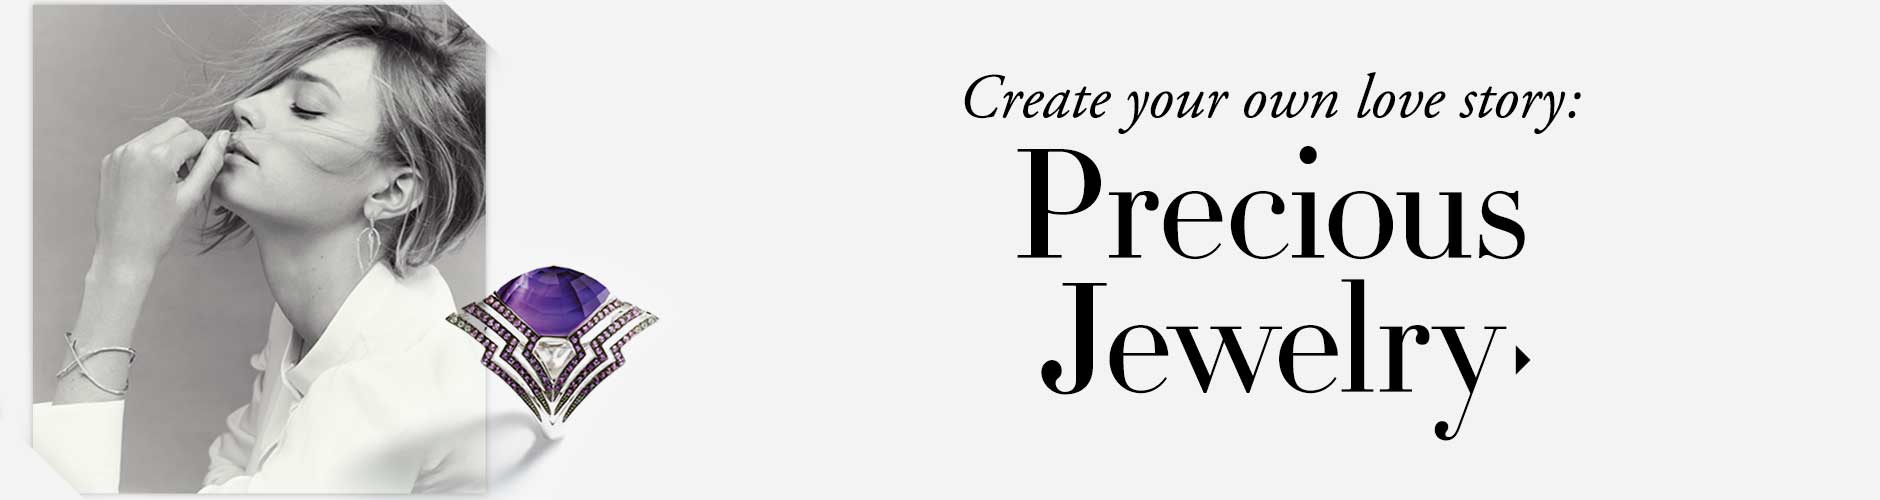 BeJeweled Precious Jewelry